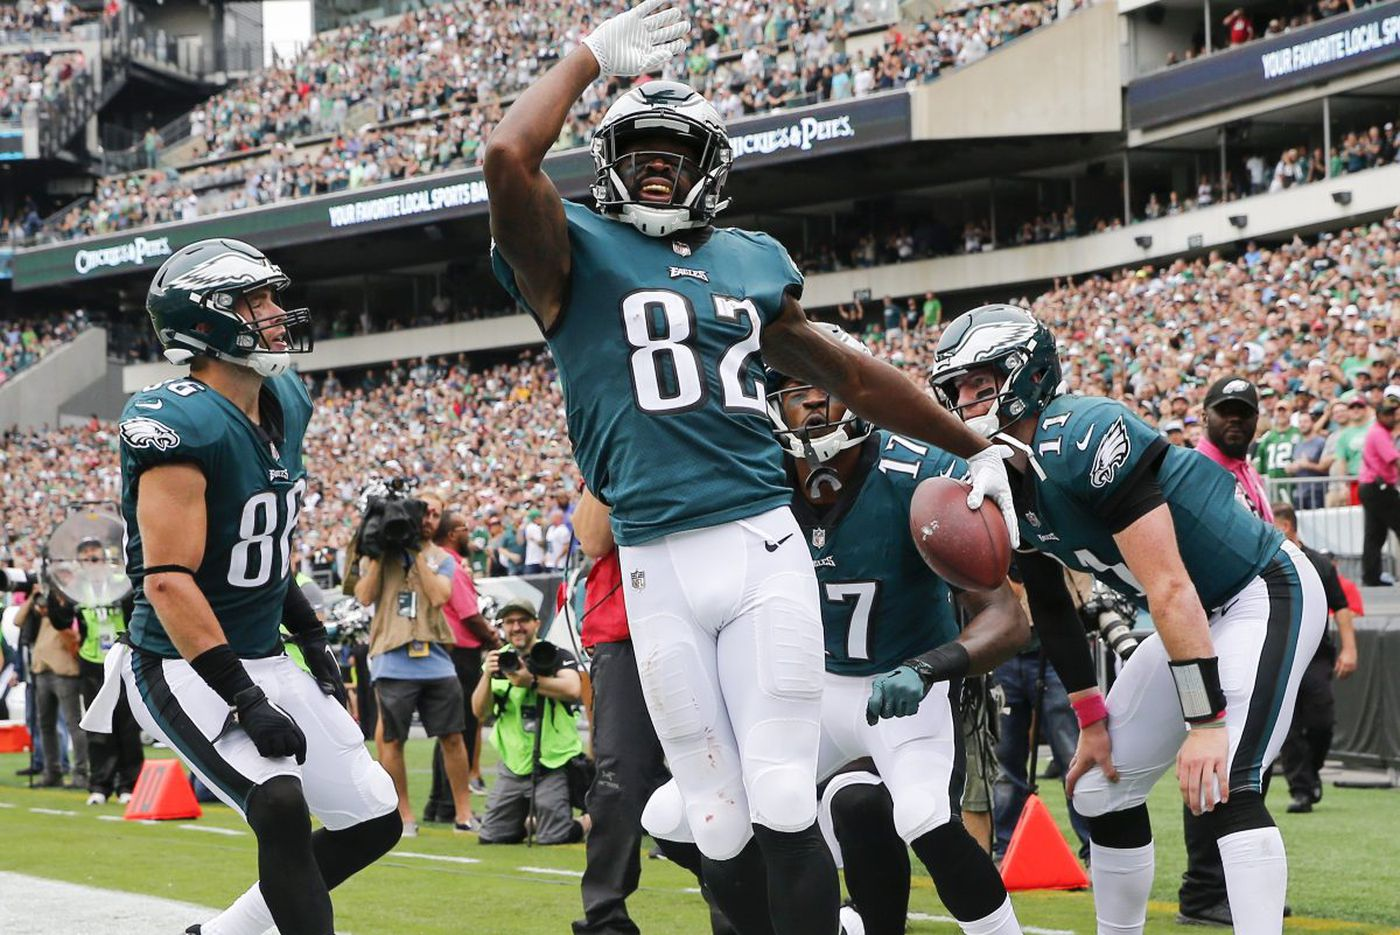 Fans and oddsmakers excited about Eagles; players don't want to hear it